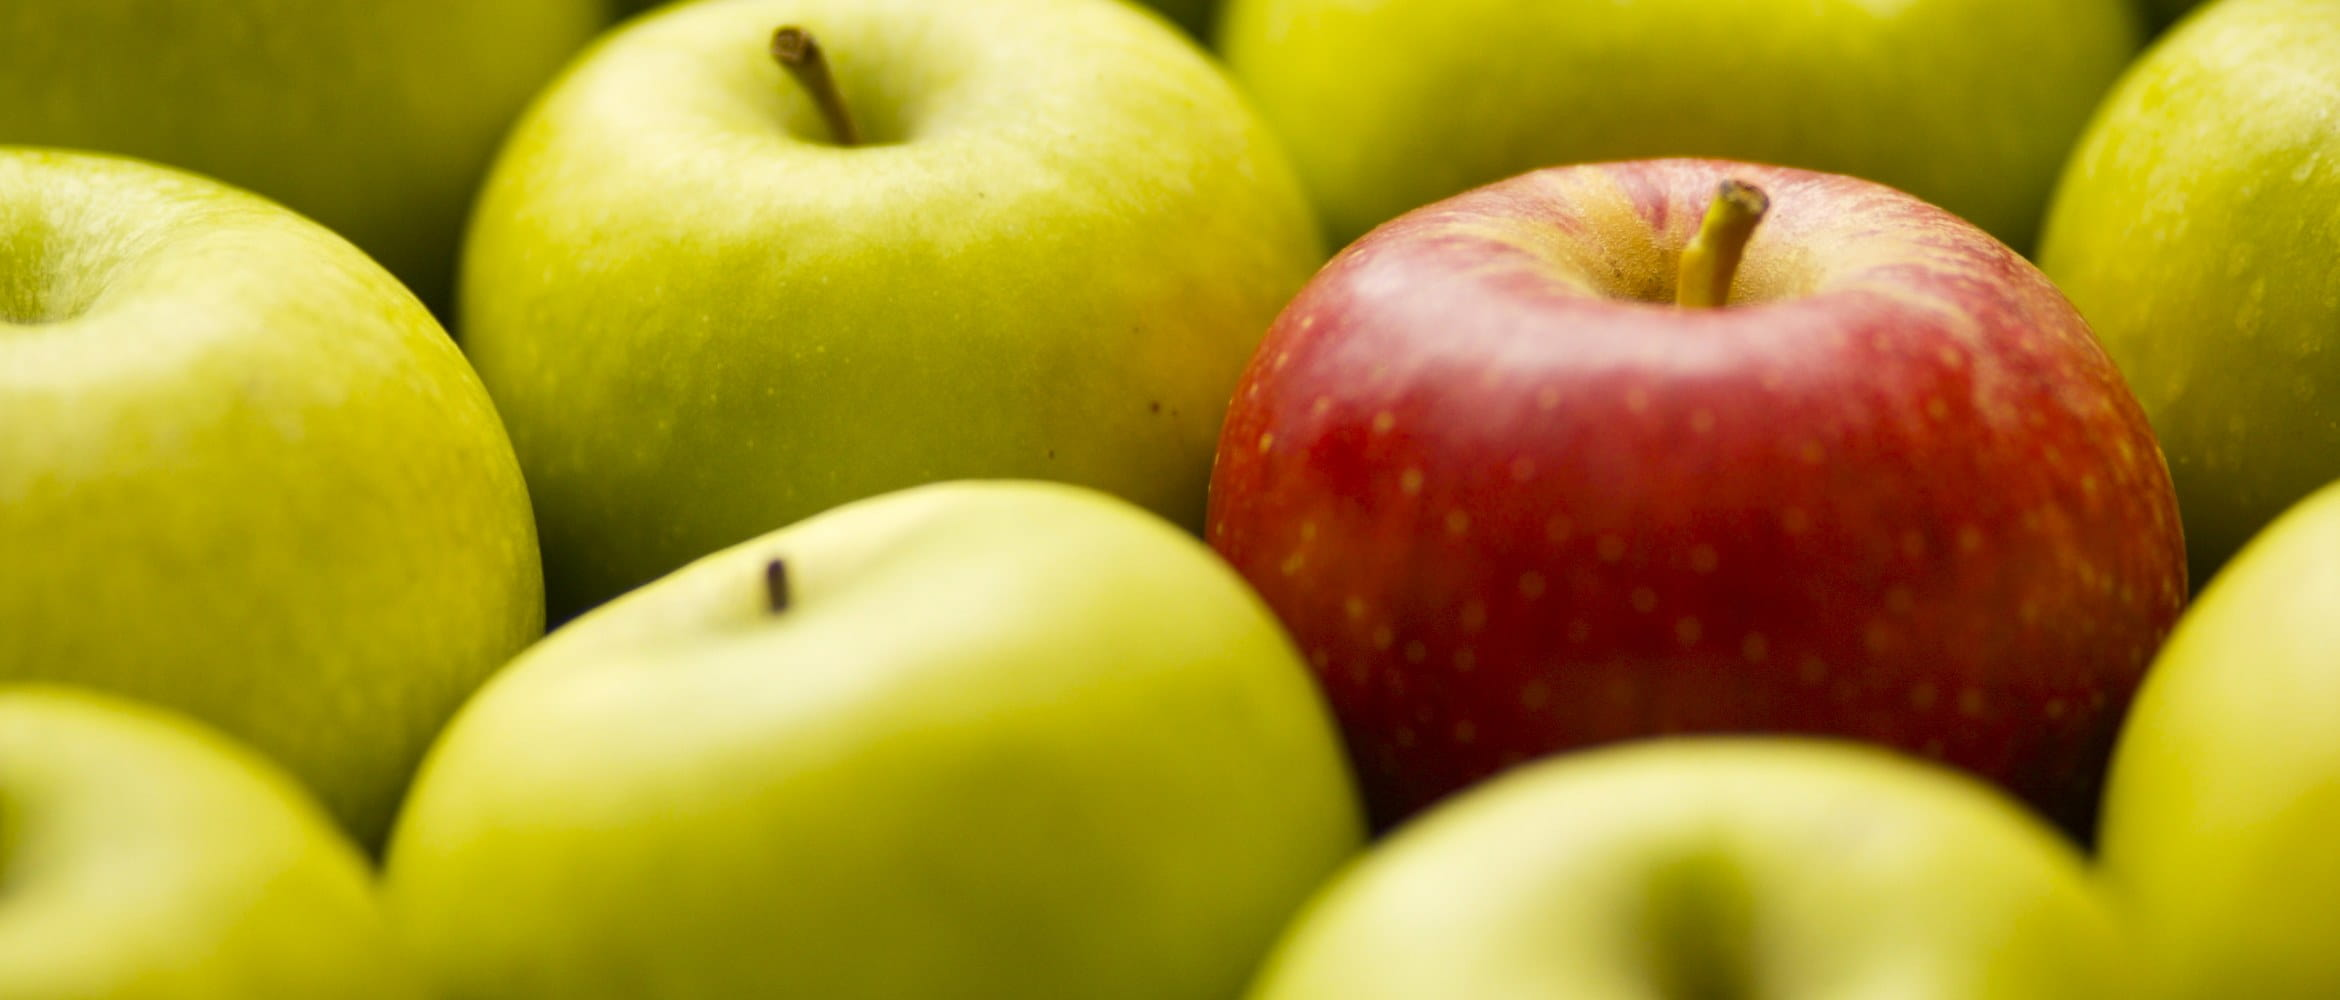 One red apple stands out against a selection of green apples in a grocery shop fruit basket